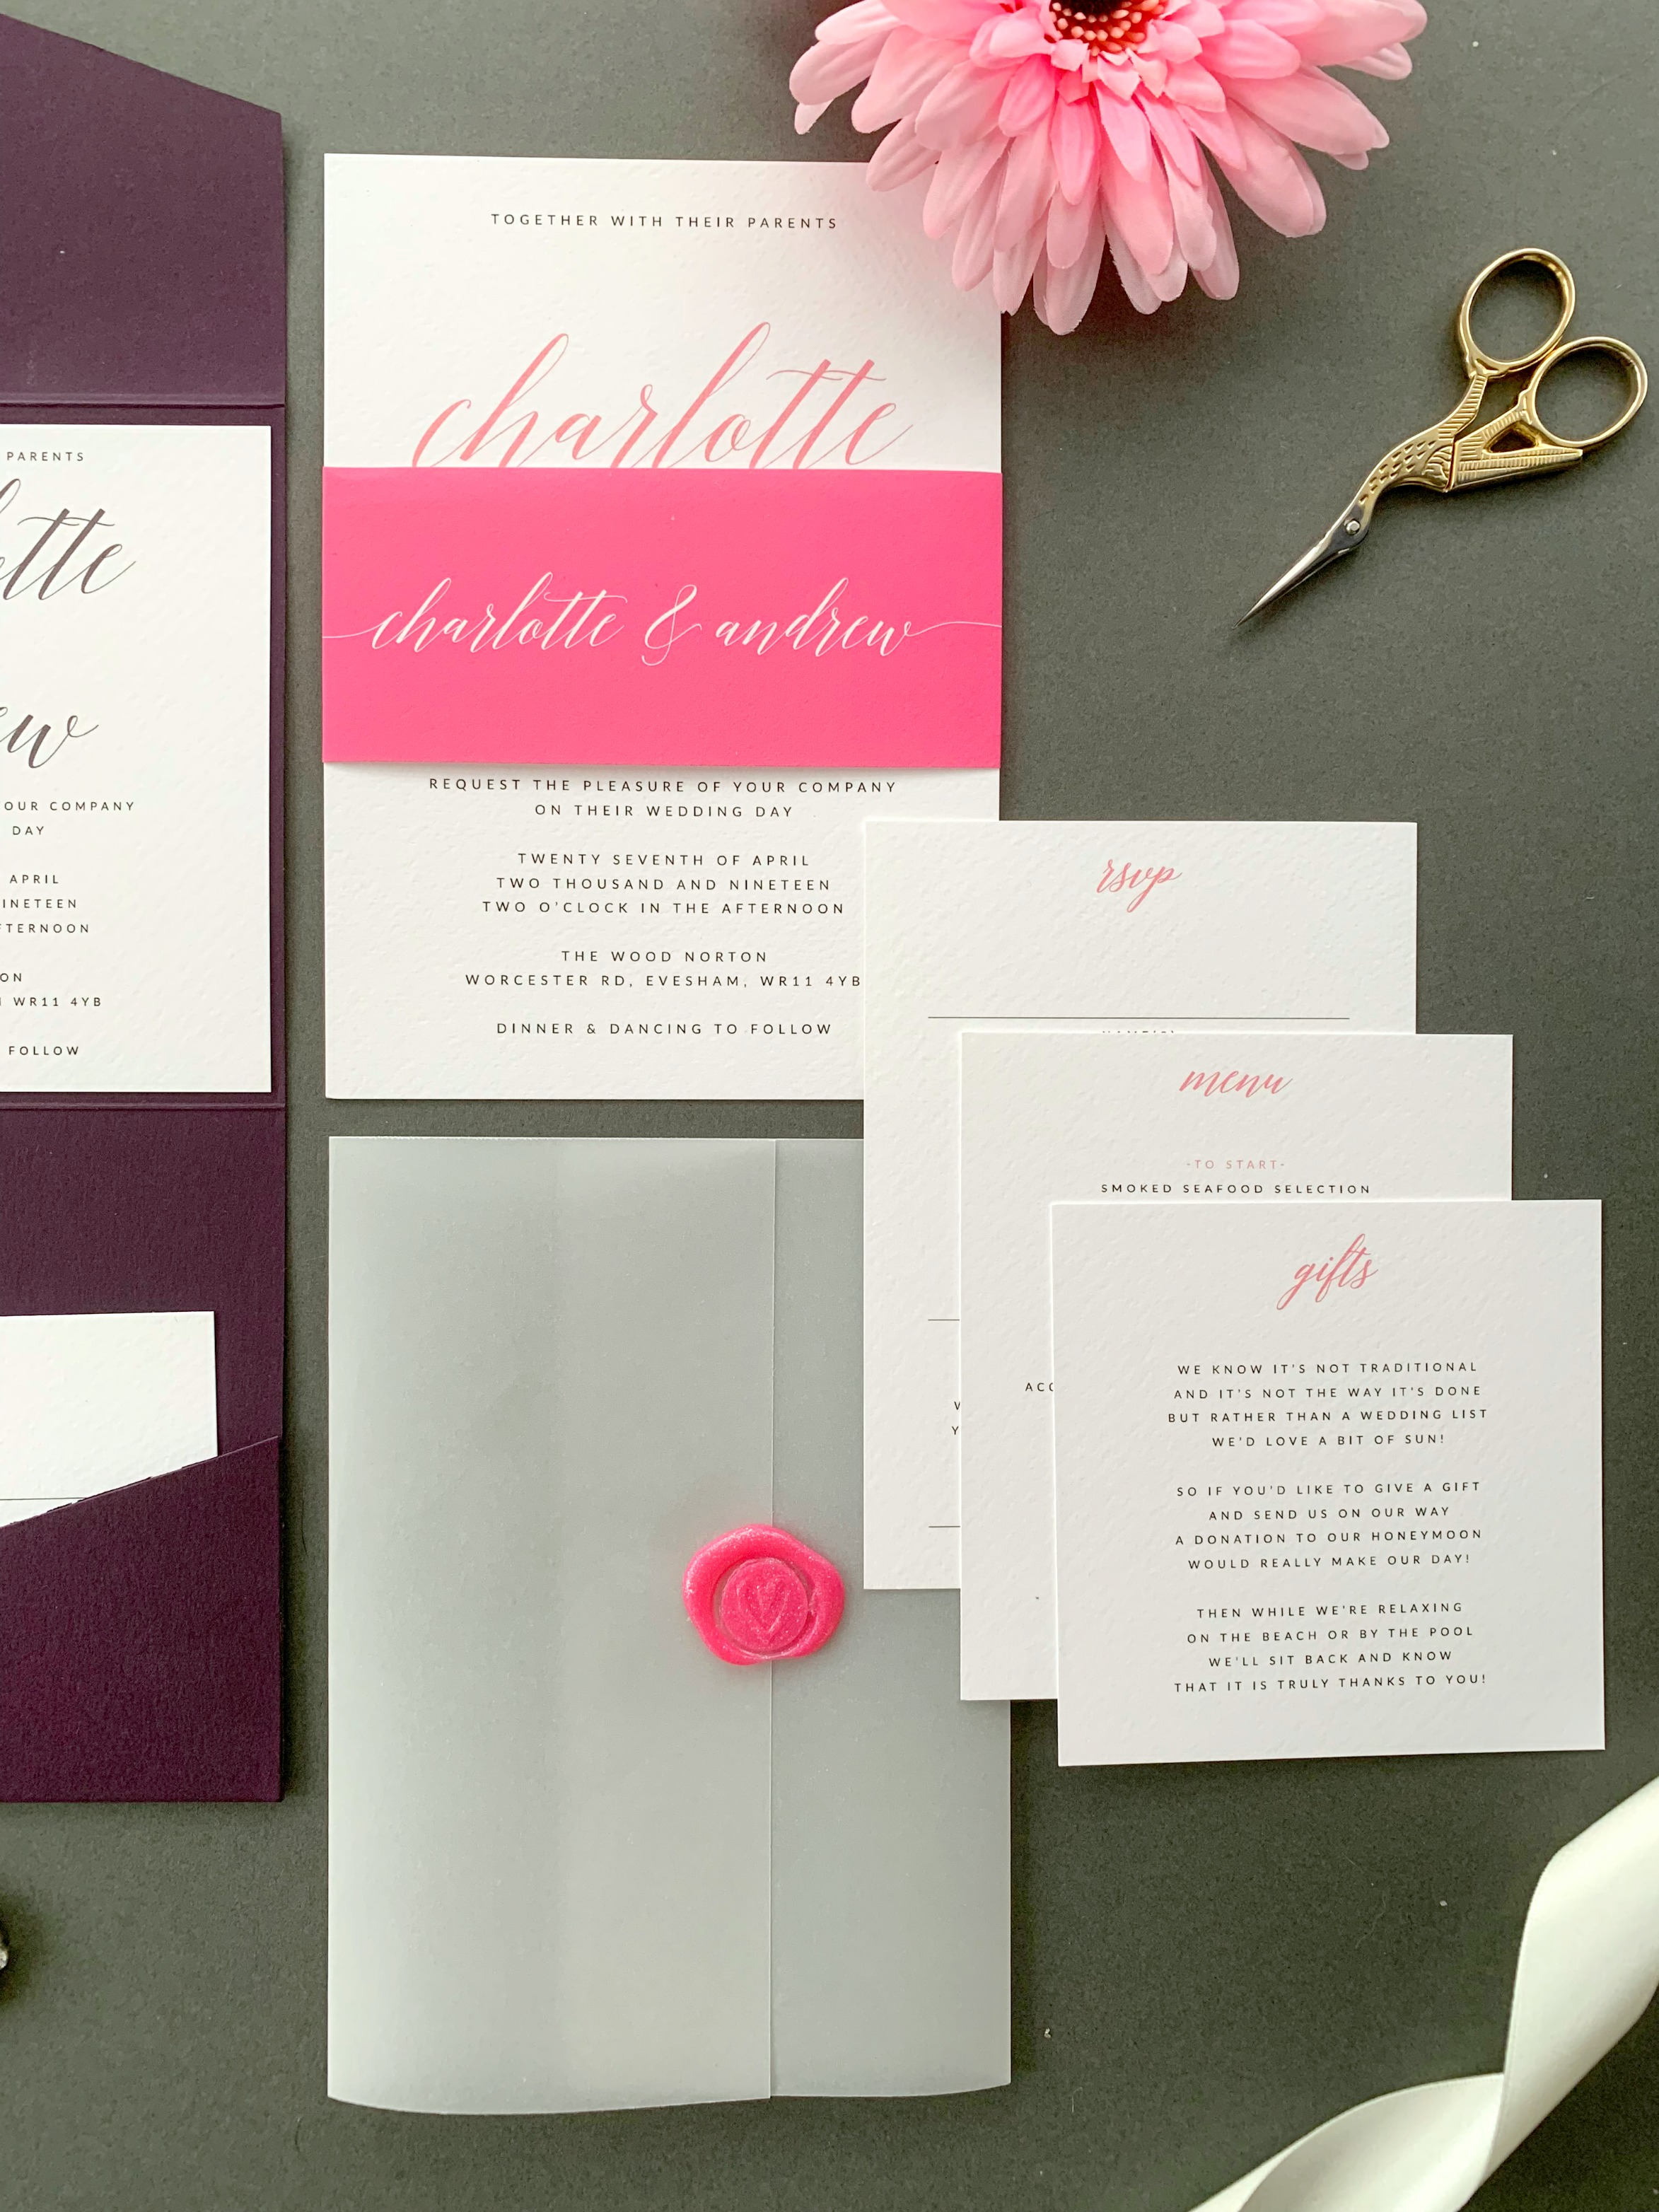 King's Road classic invitation suite with inserts